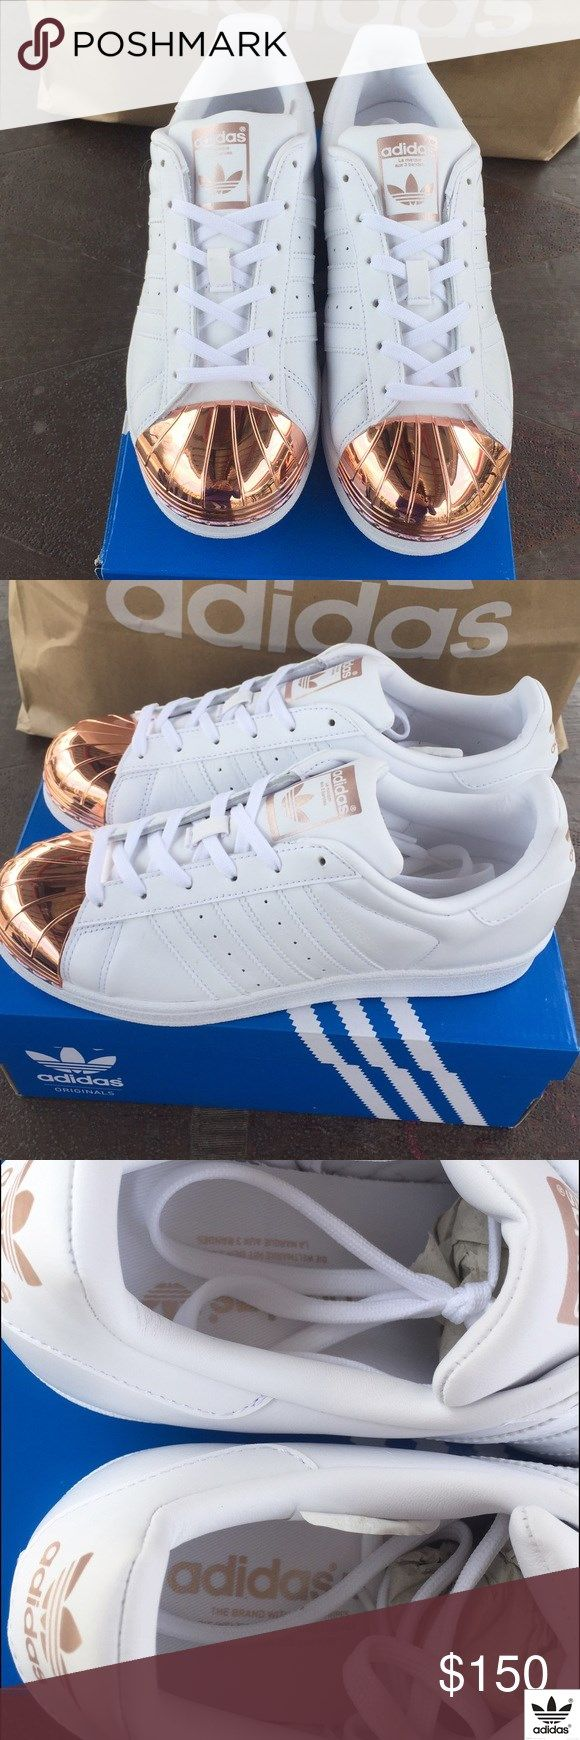 sports shoes aac64 44261 EXCLUSIVE Rose Gold Adidas Superstar (Shelltoes) Amazing real rose gold  metal plate on the toe. Rose gold and white only. Brand new. Super exclusive .